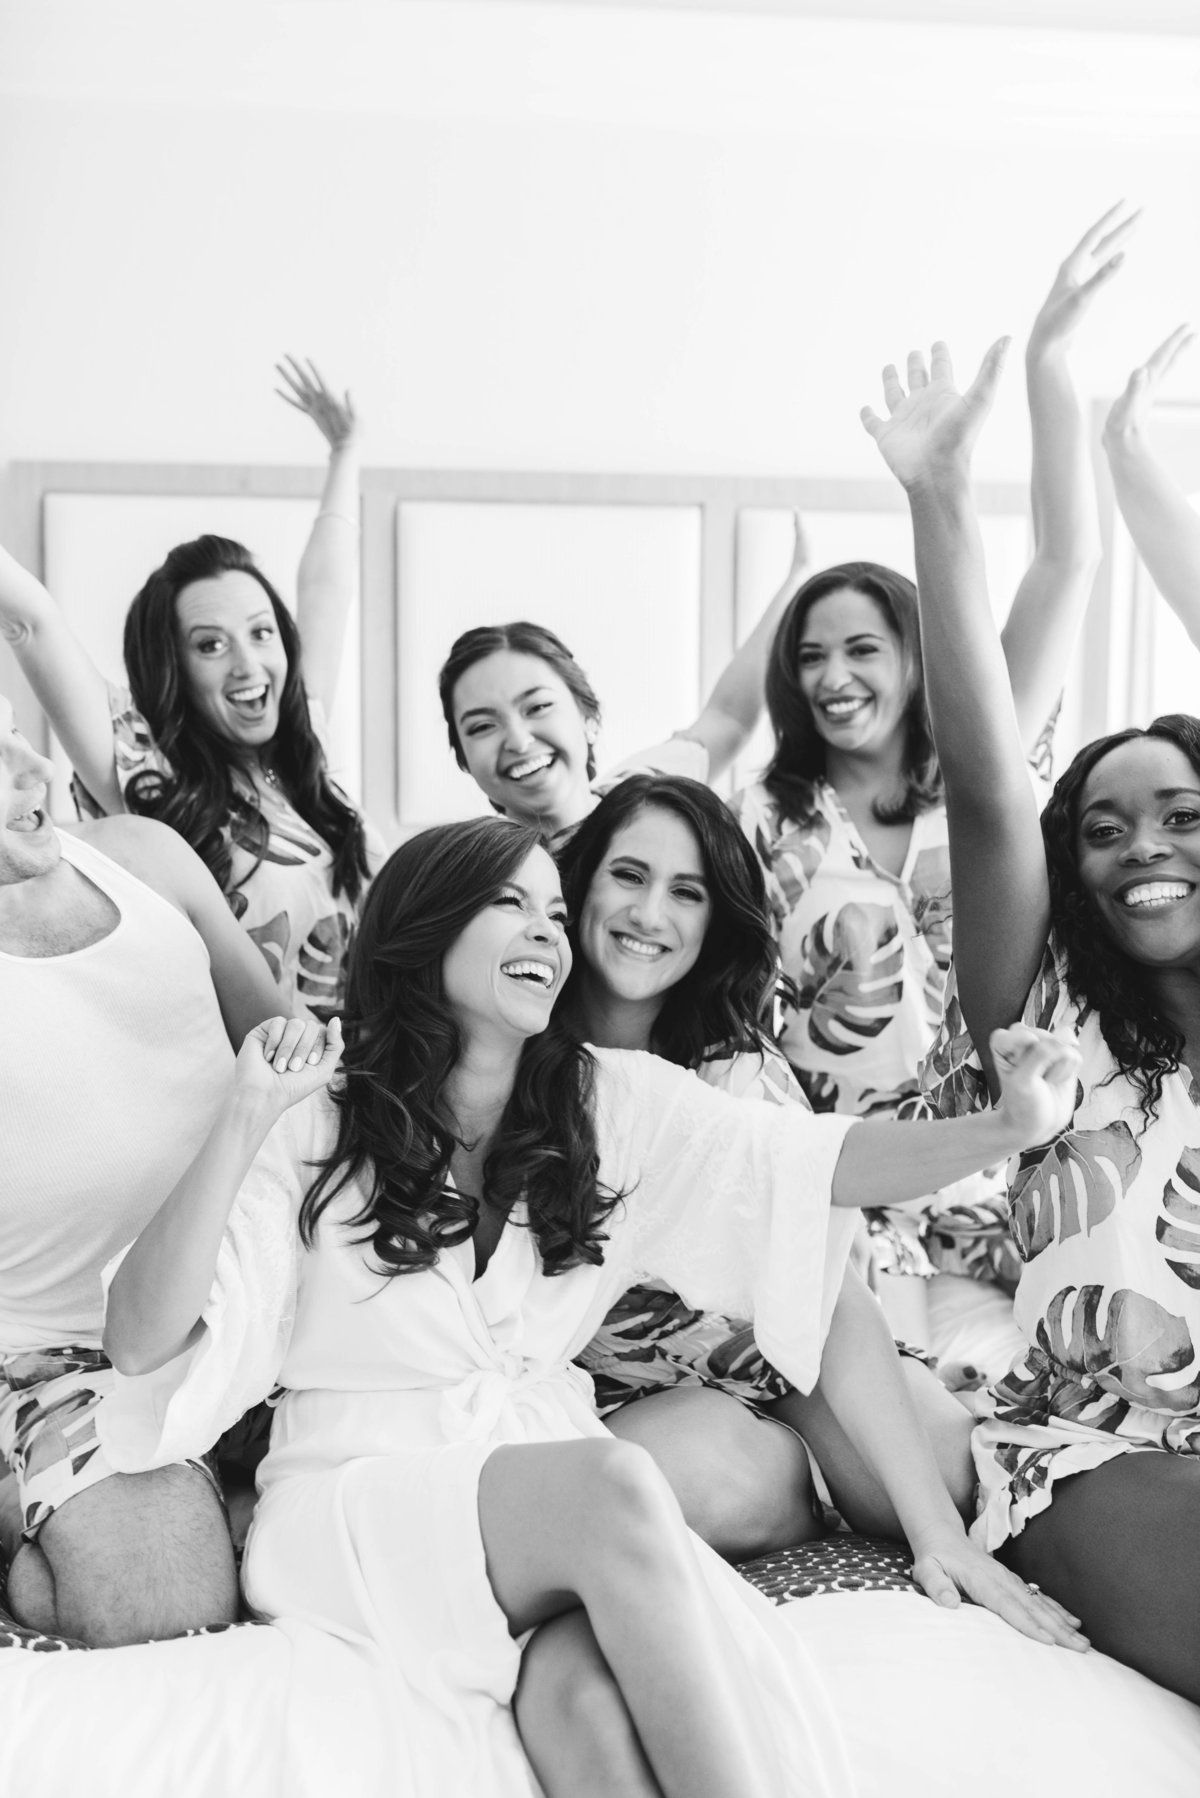 Bride and bridesmaids celebrating before wedding